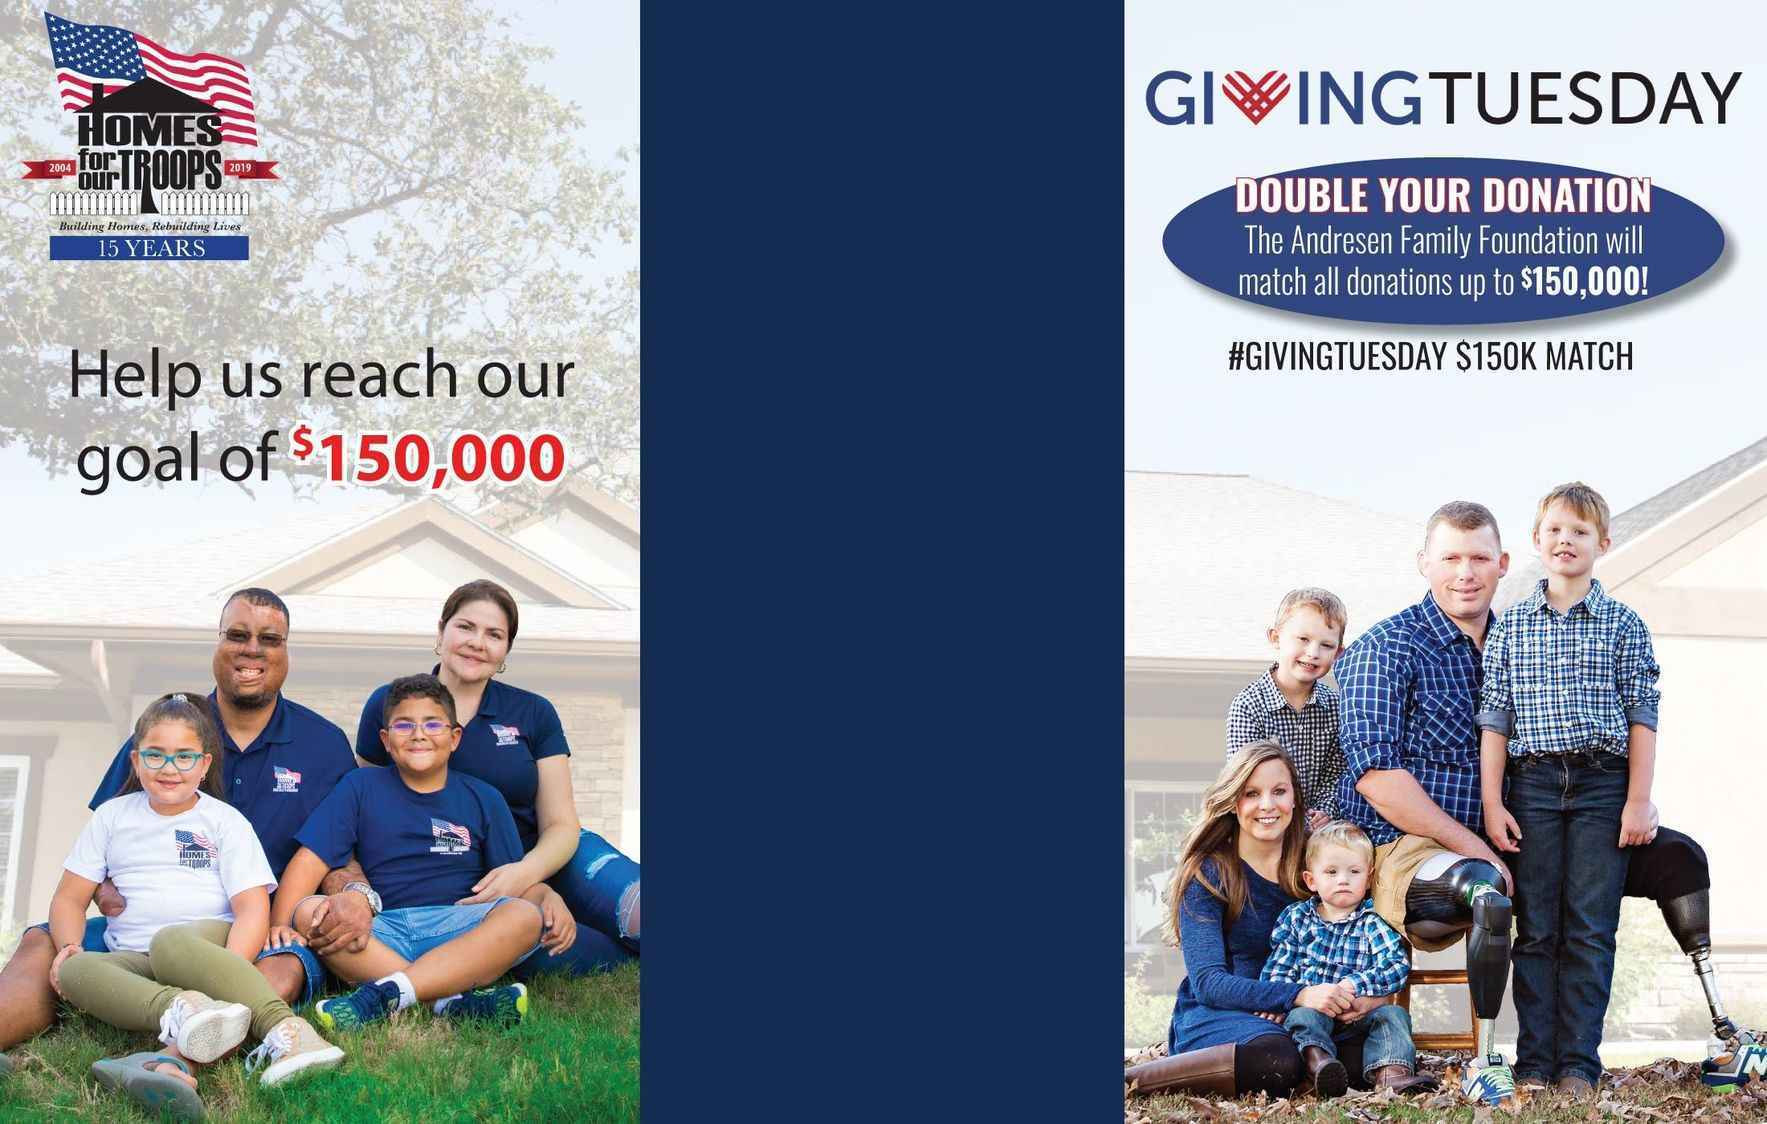 Homes For Our Troops GivingTuesday image